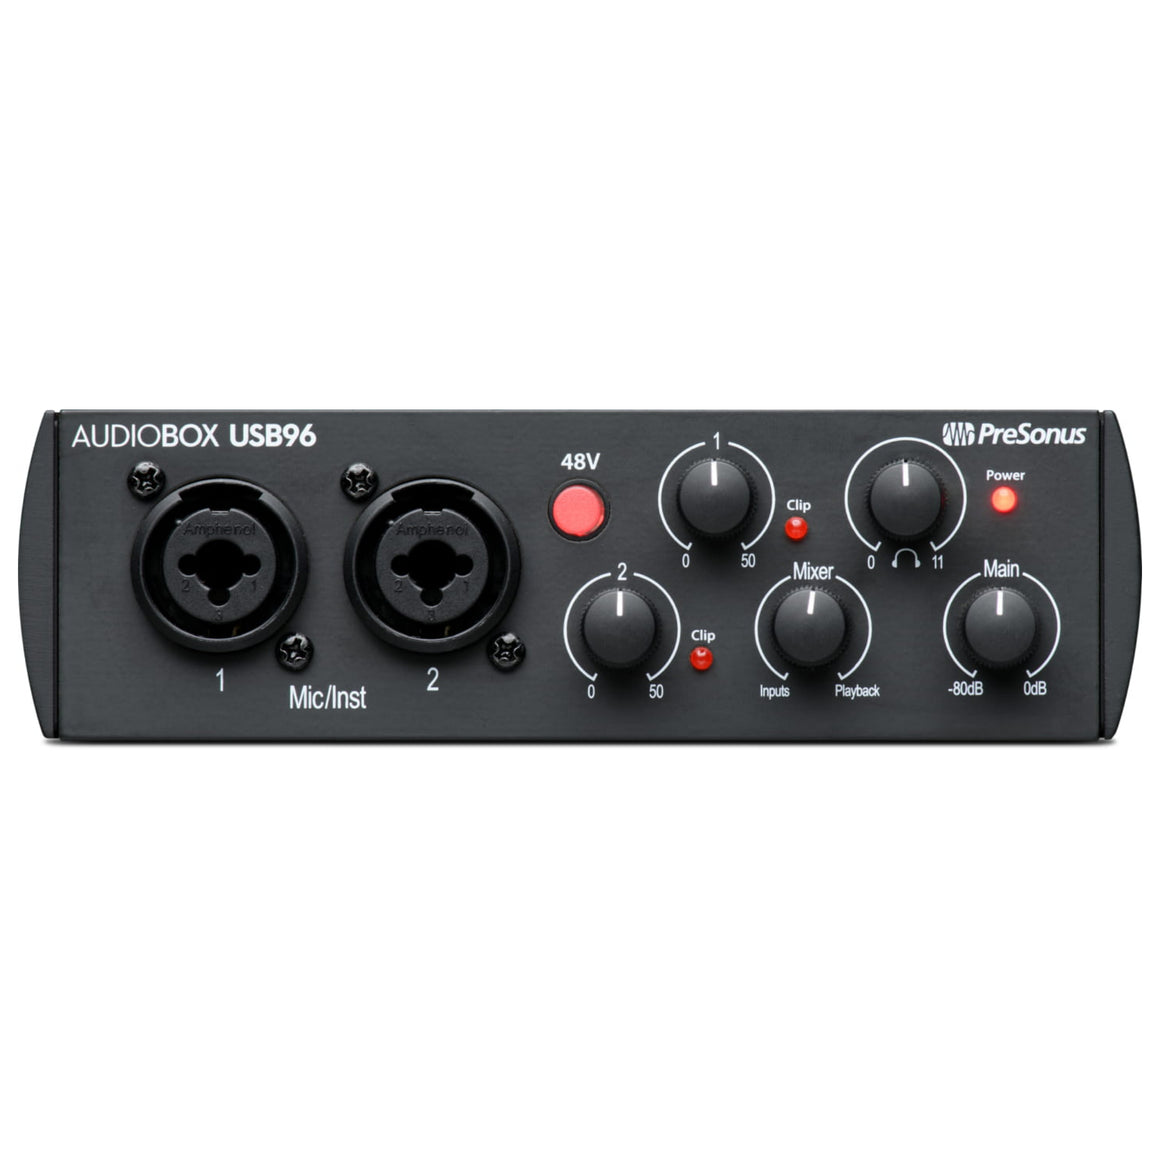 Presonus Audiobox USB 96 25th Anniversary Interface